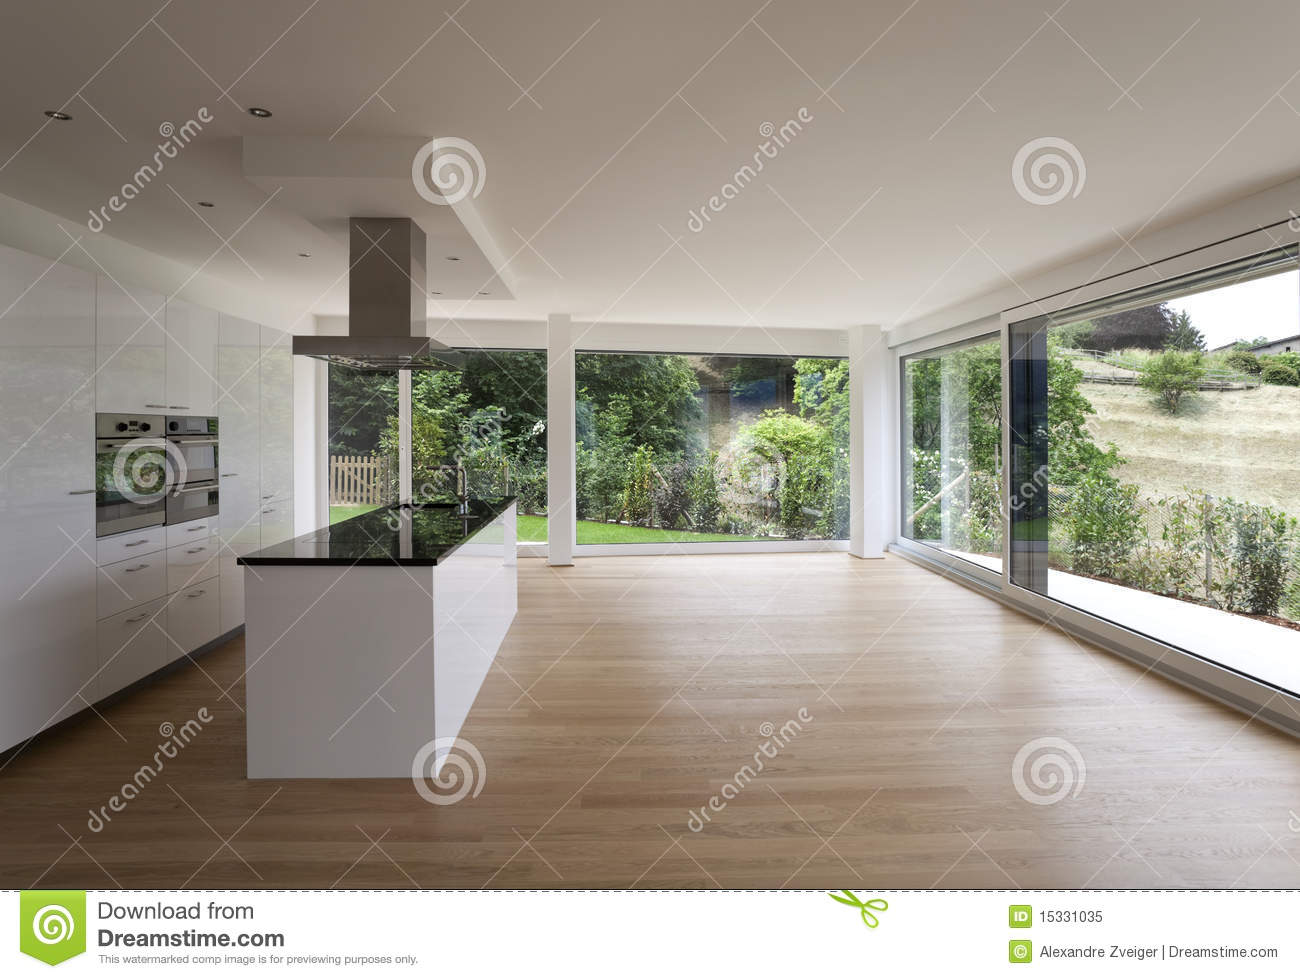 Bel int rieur d 39 une maison moderne photo libre de droits for Villa moderne interieur